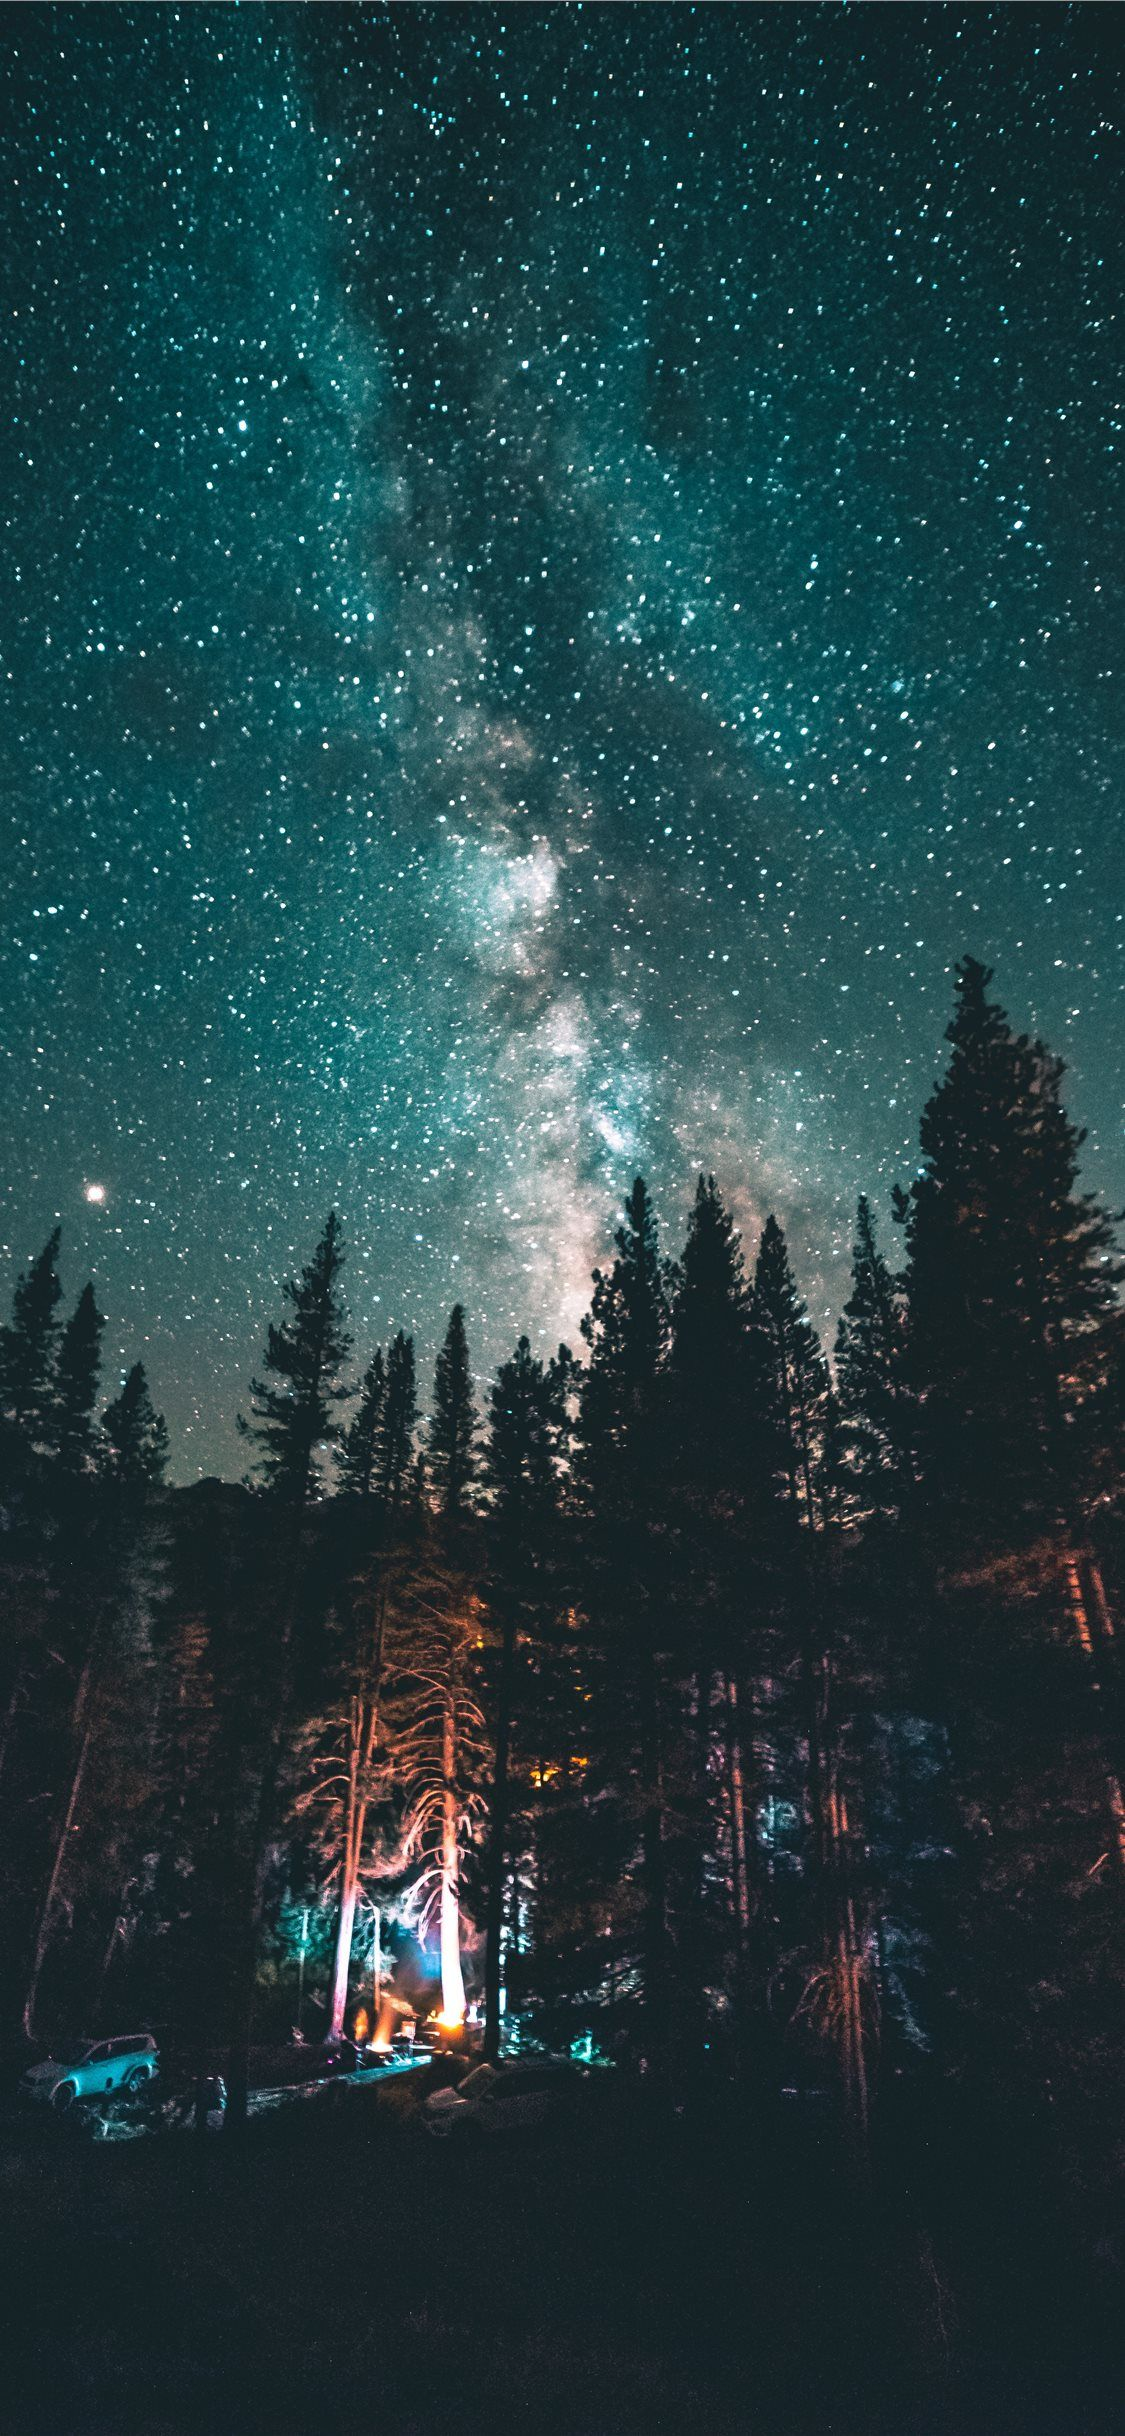 Free Download The Campfire Wallpaper Beaty Your Iphone Woods Lake United States Night Sk Night Sky Wallpaper Beautiful Nature Wallpaper Nature Wallpaper